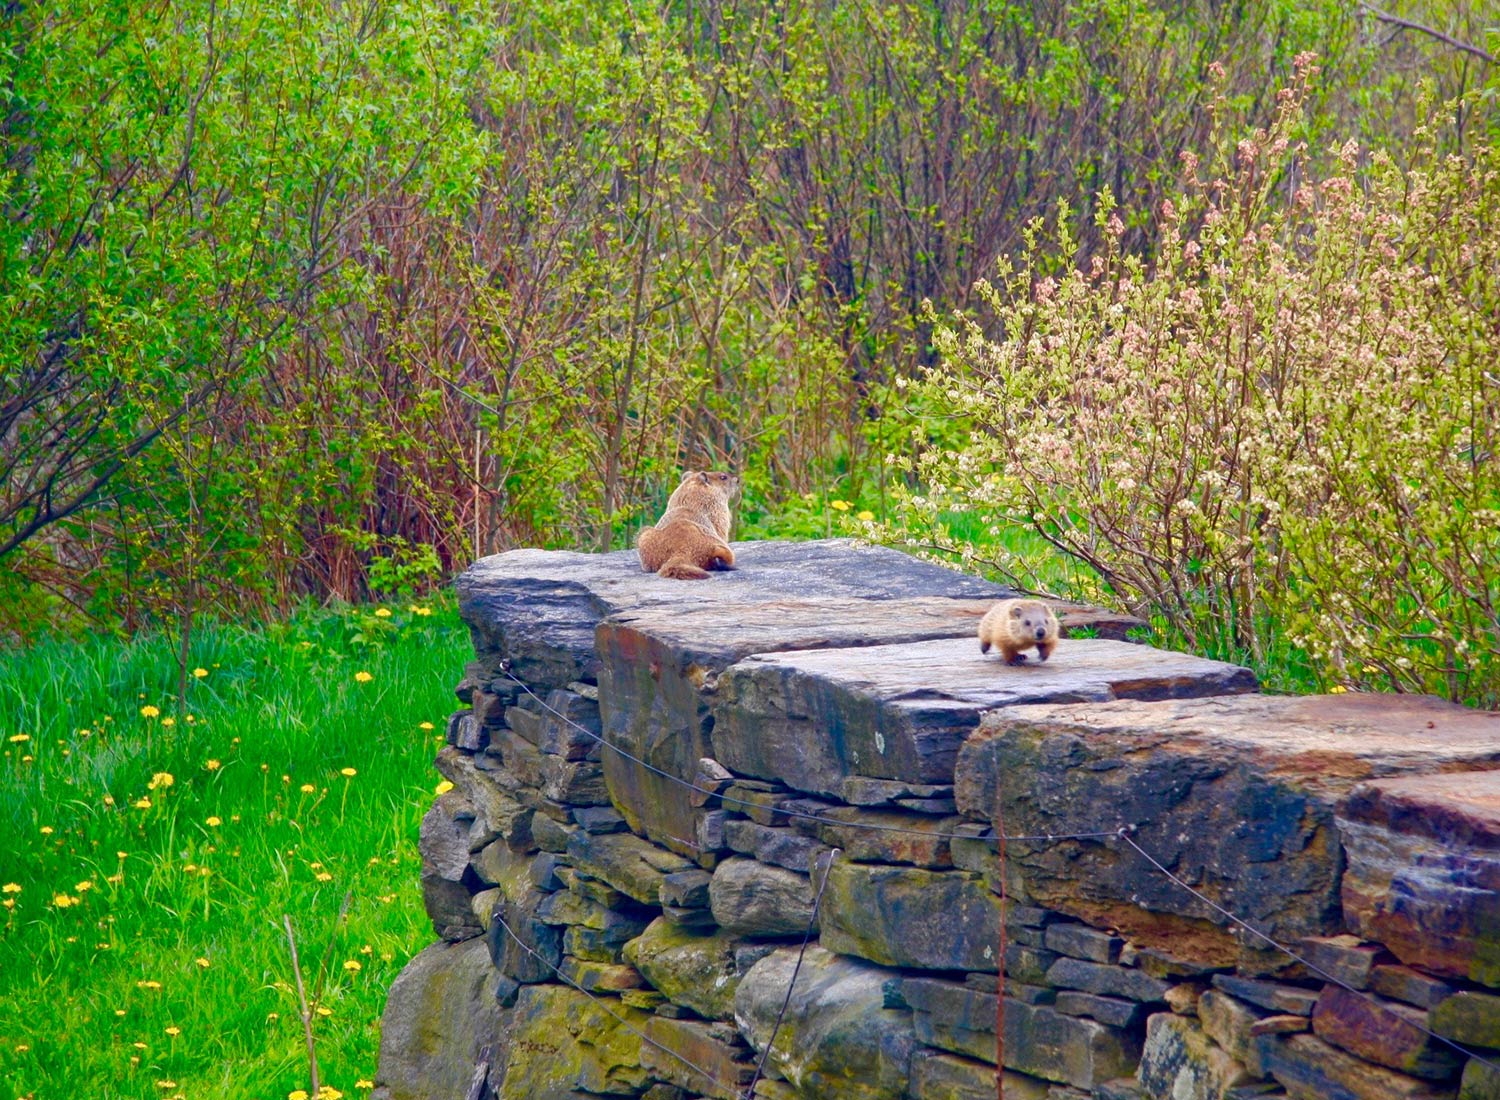 Sanctuary at SHO: redefining animal agriculture | partnering with wildlife, like this woodchuck mother and her offspring, to steward non-harming perennial food systems while ensuring safe & healthy habitat